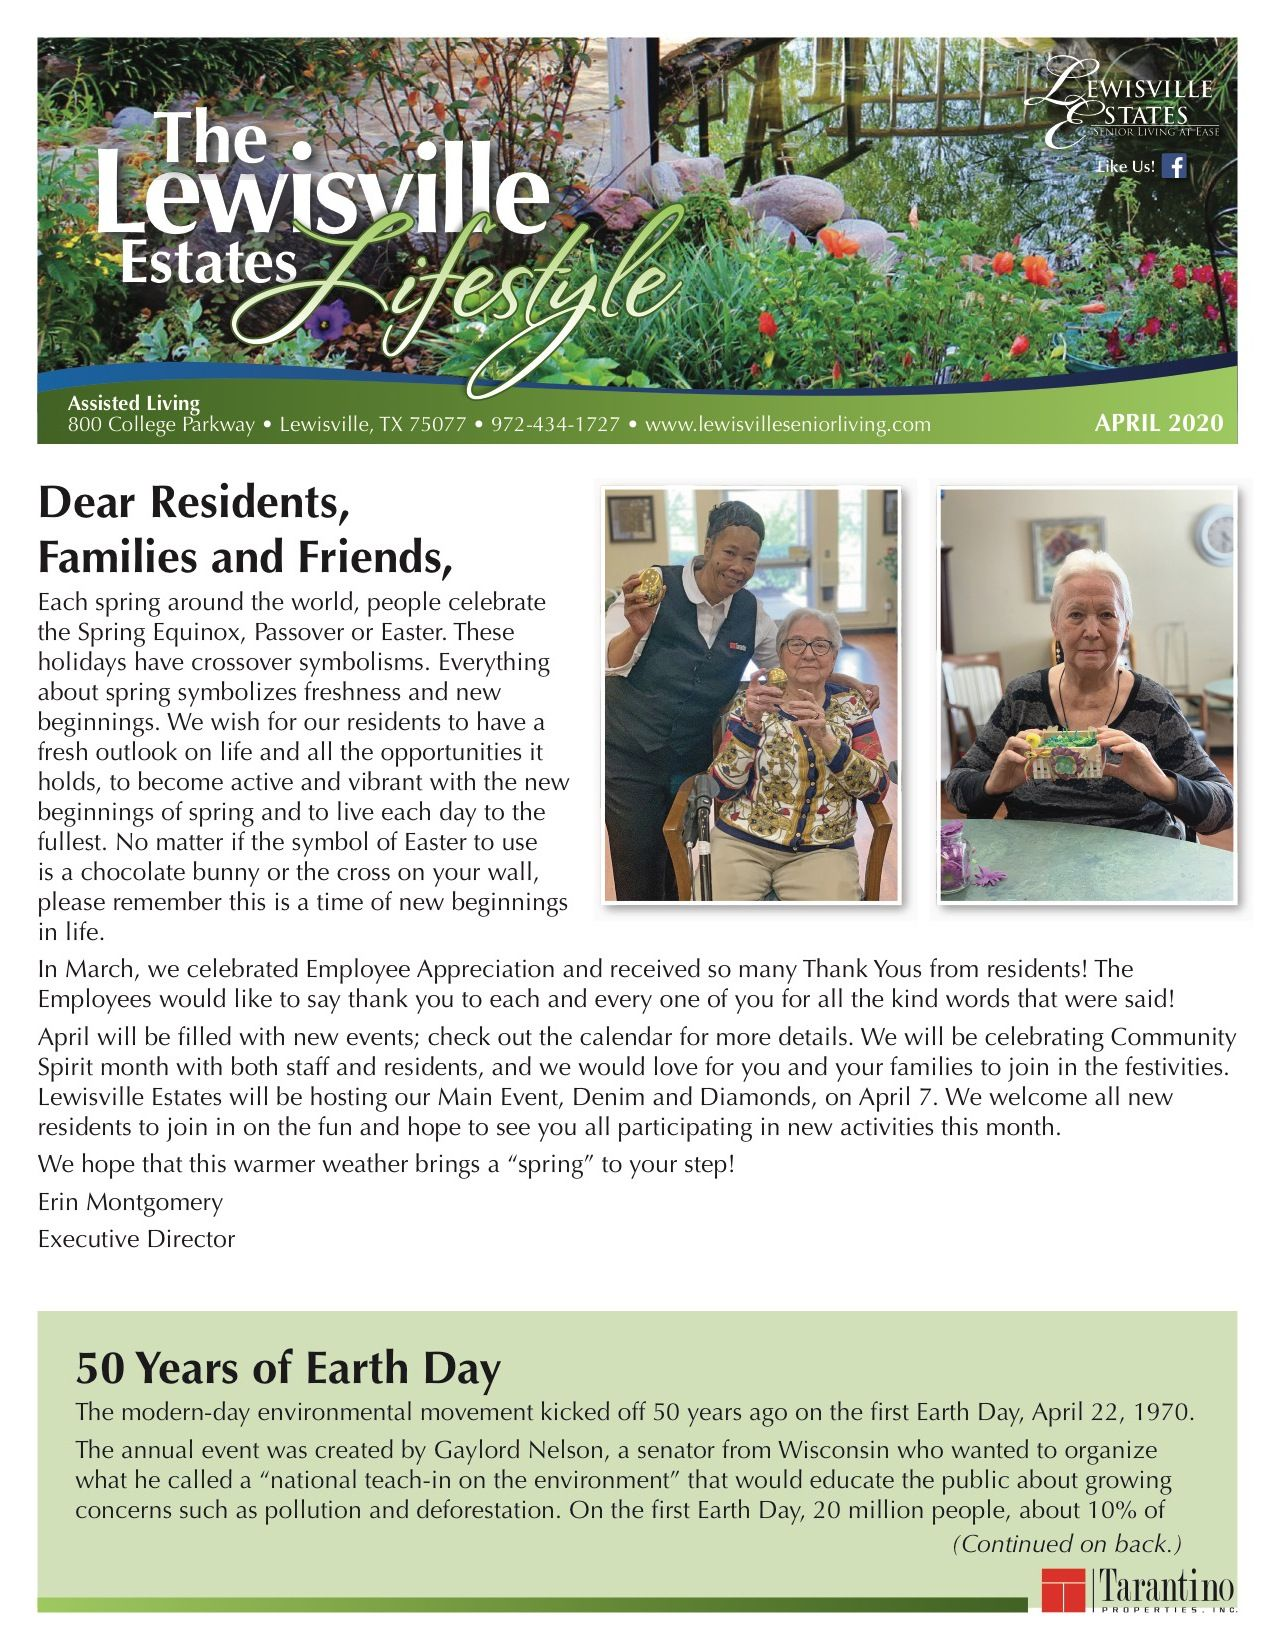 Assisted Living Current Newsletter